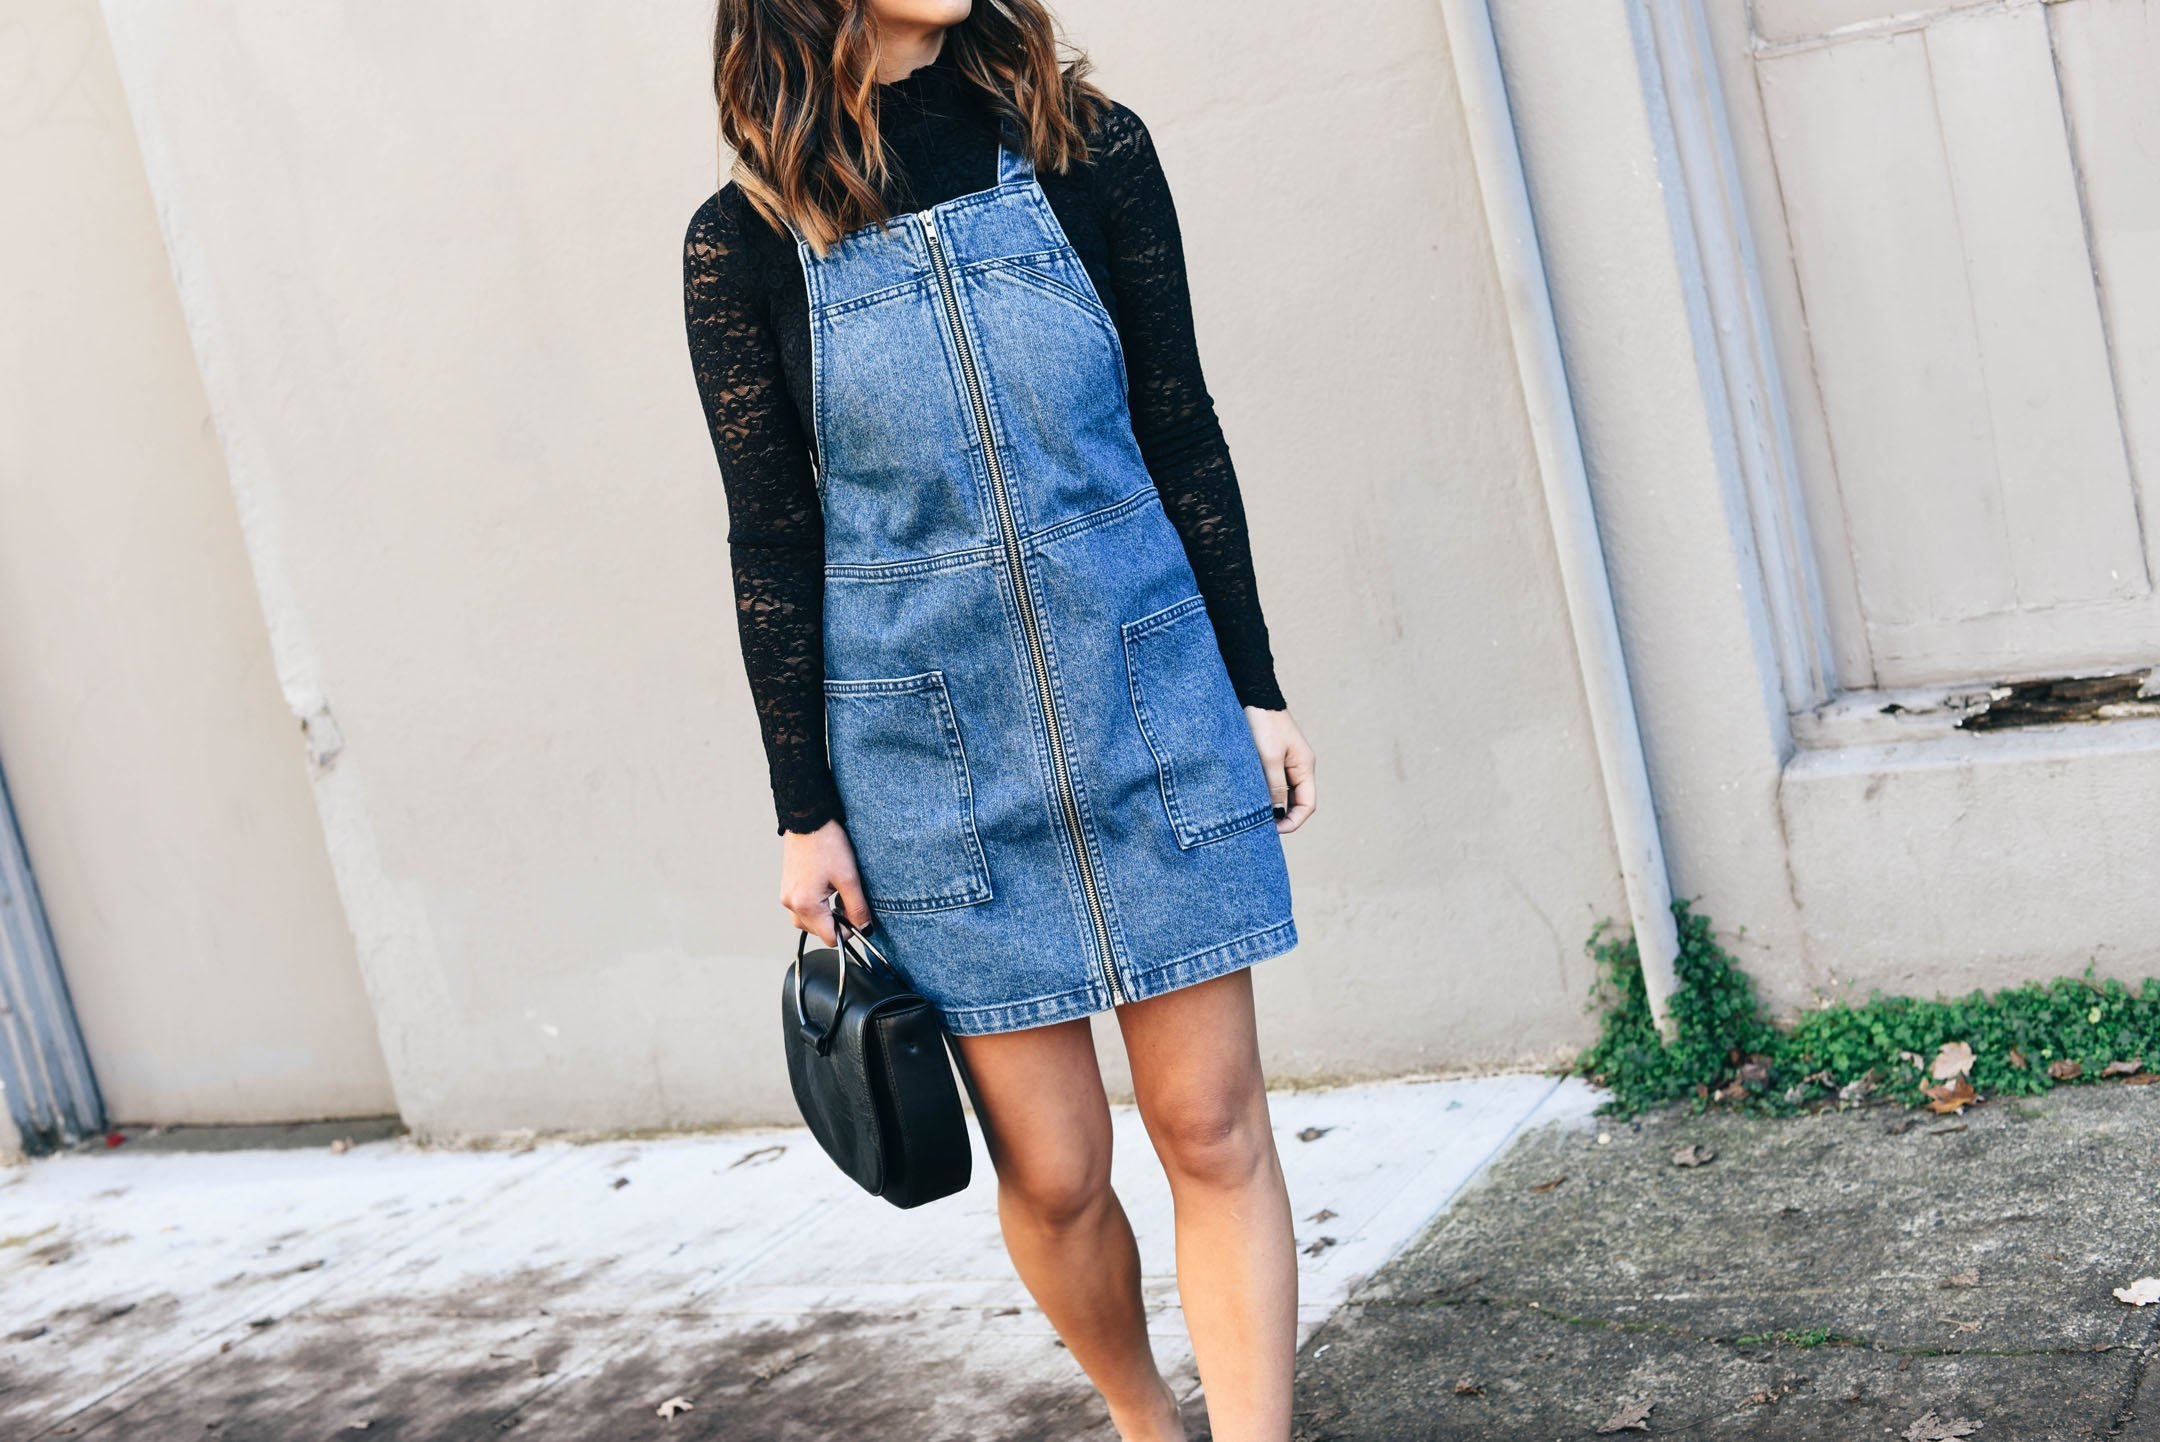 crystalin-marie-wearing-topshop-pinafore-dress